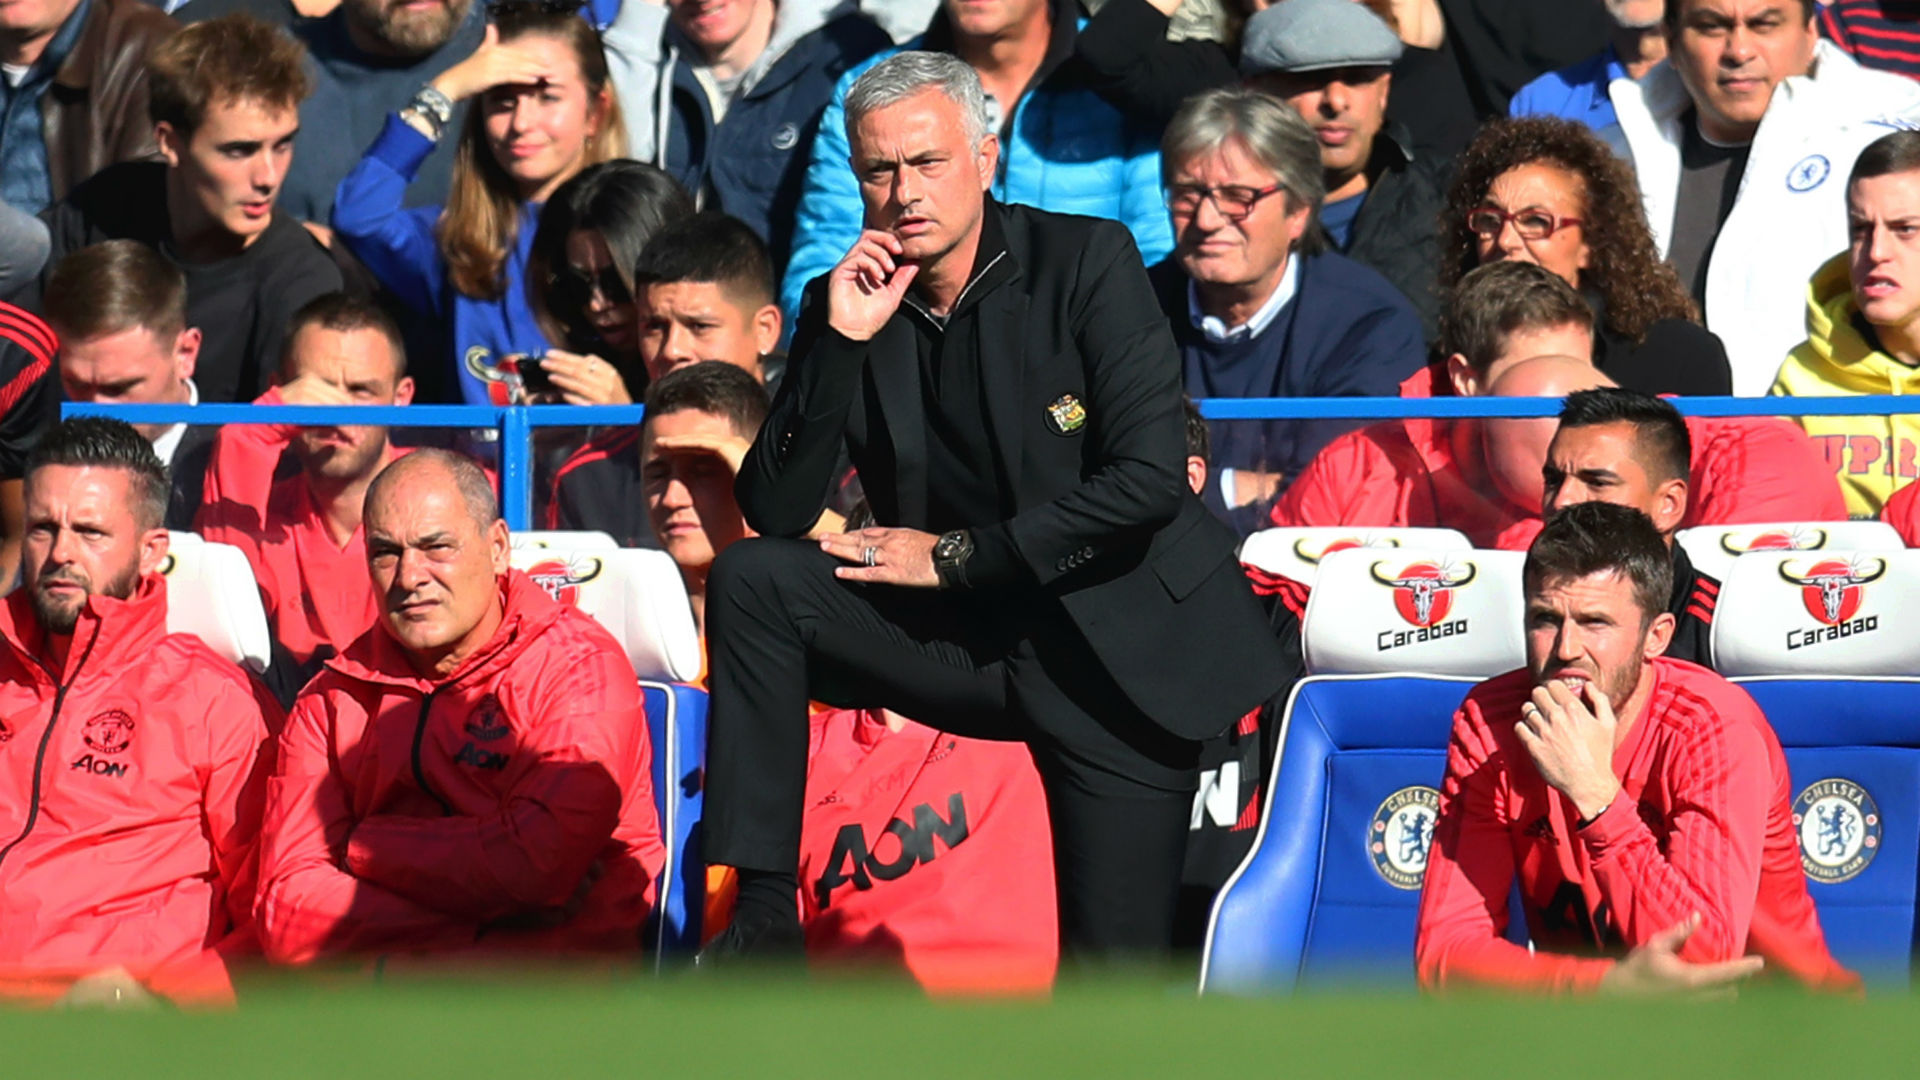 I will be there sooner or later - Guardiola sympathises with Mourinho struggles